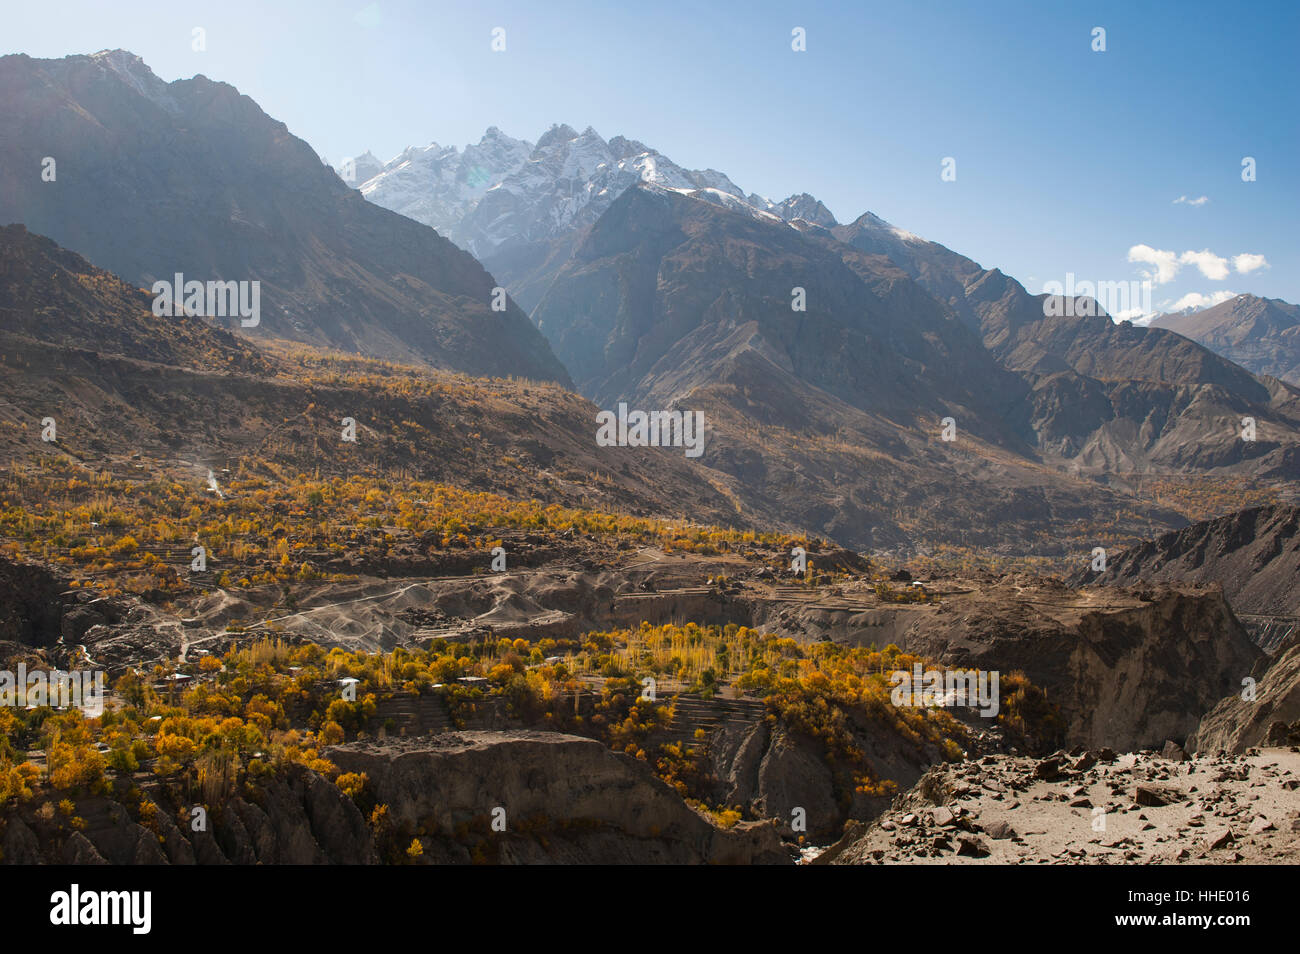 Dramatic Himalayas landscape in the Skardu valley, Gilgit-Baltistan, Pakistan - Stock Image